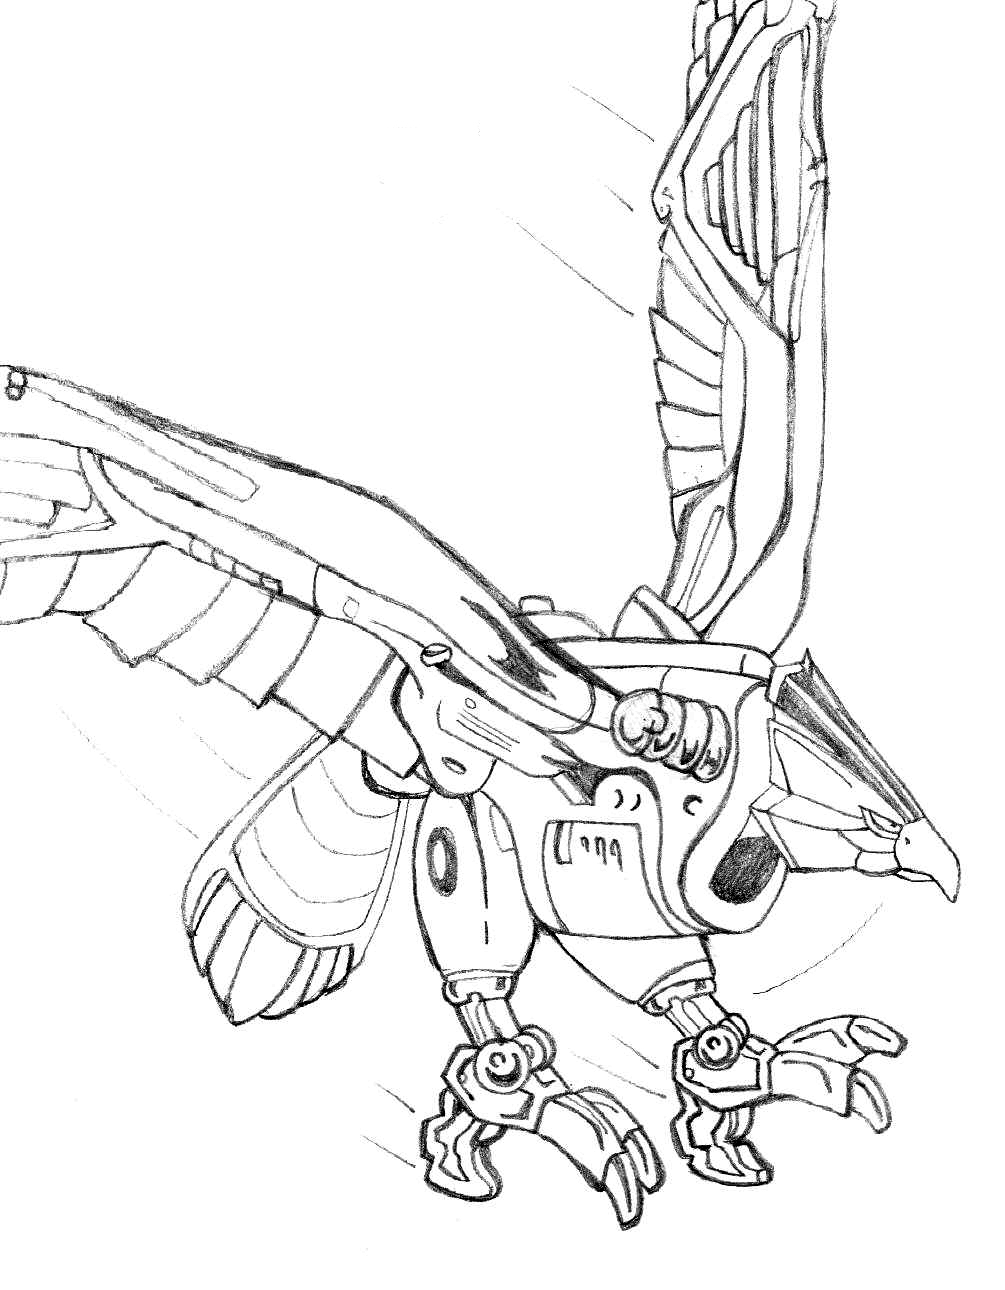 Megazord Drawing at GetDrawings.com | Free for personal use Megazord ...